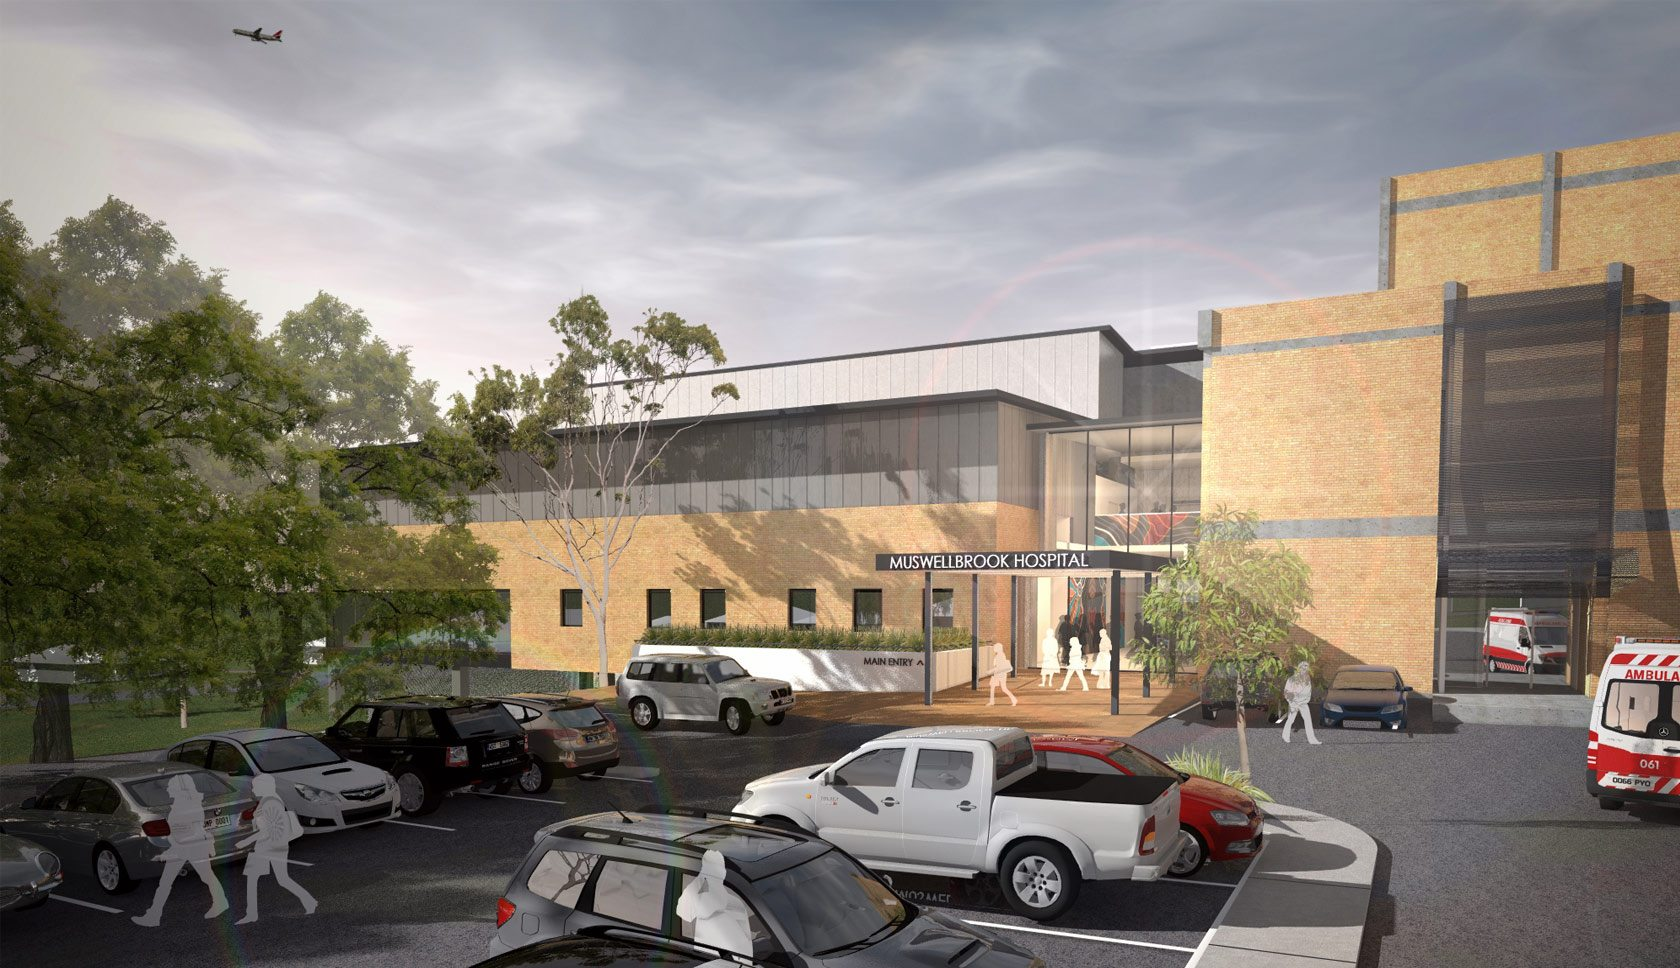 Muswellbrock hospital drawing of the hospital building from enterance